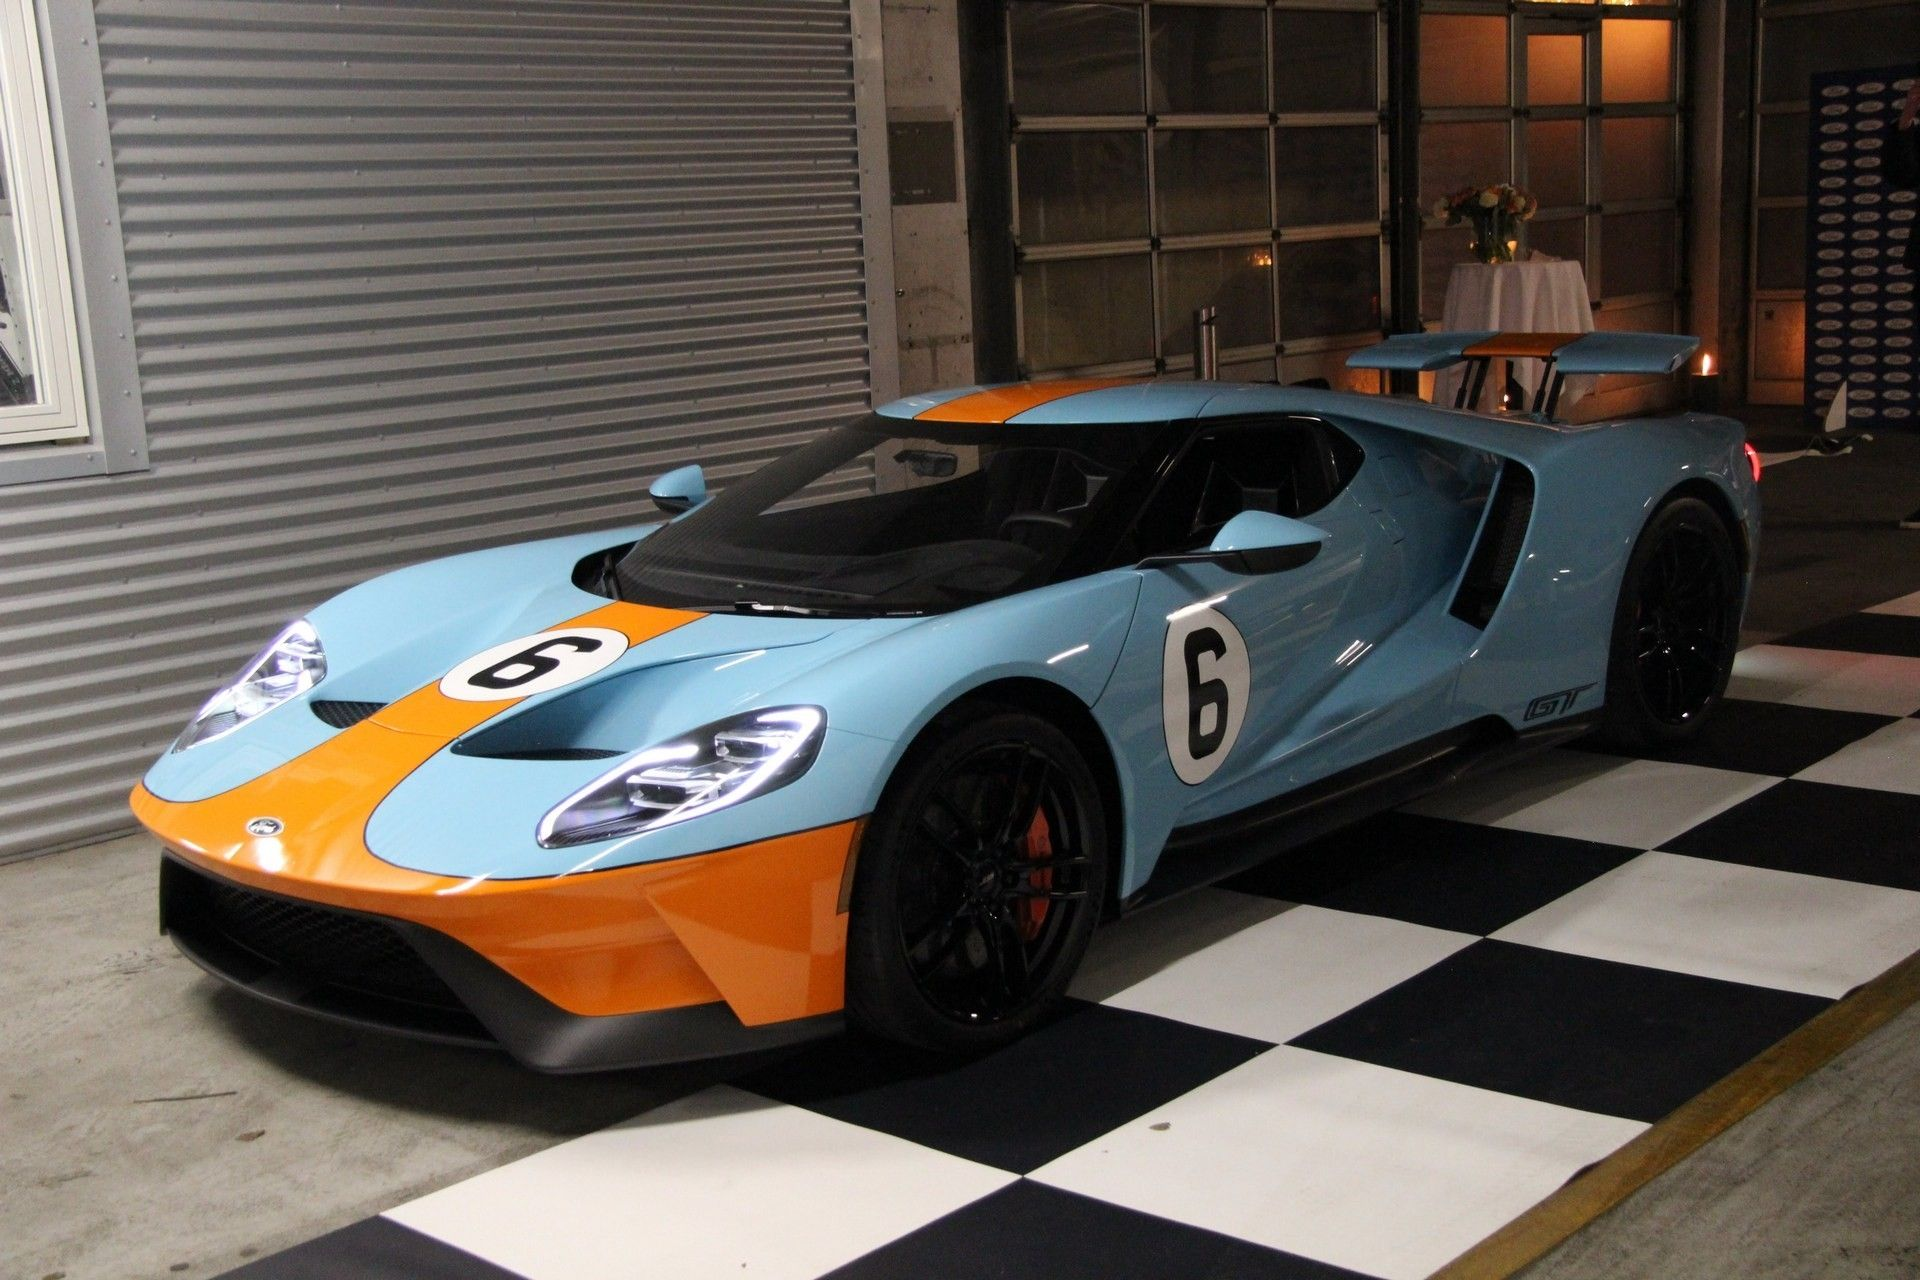 2019 Ford Gt Supercar Release Date And Specs Ford Gt Super Cars Ford